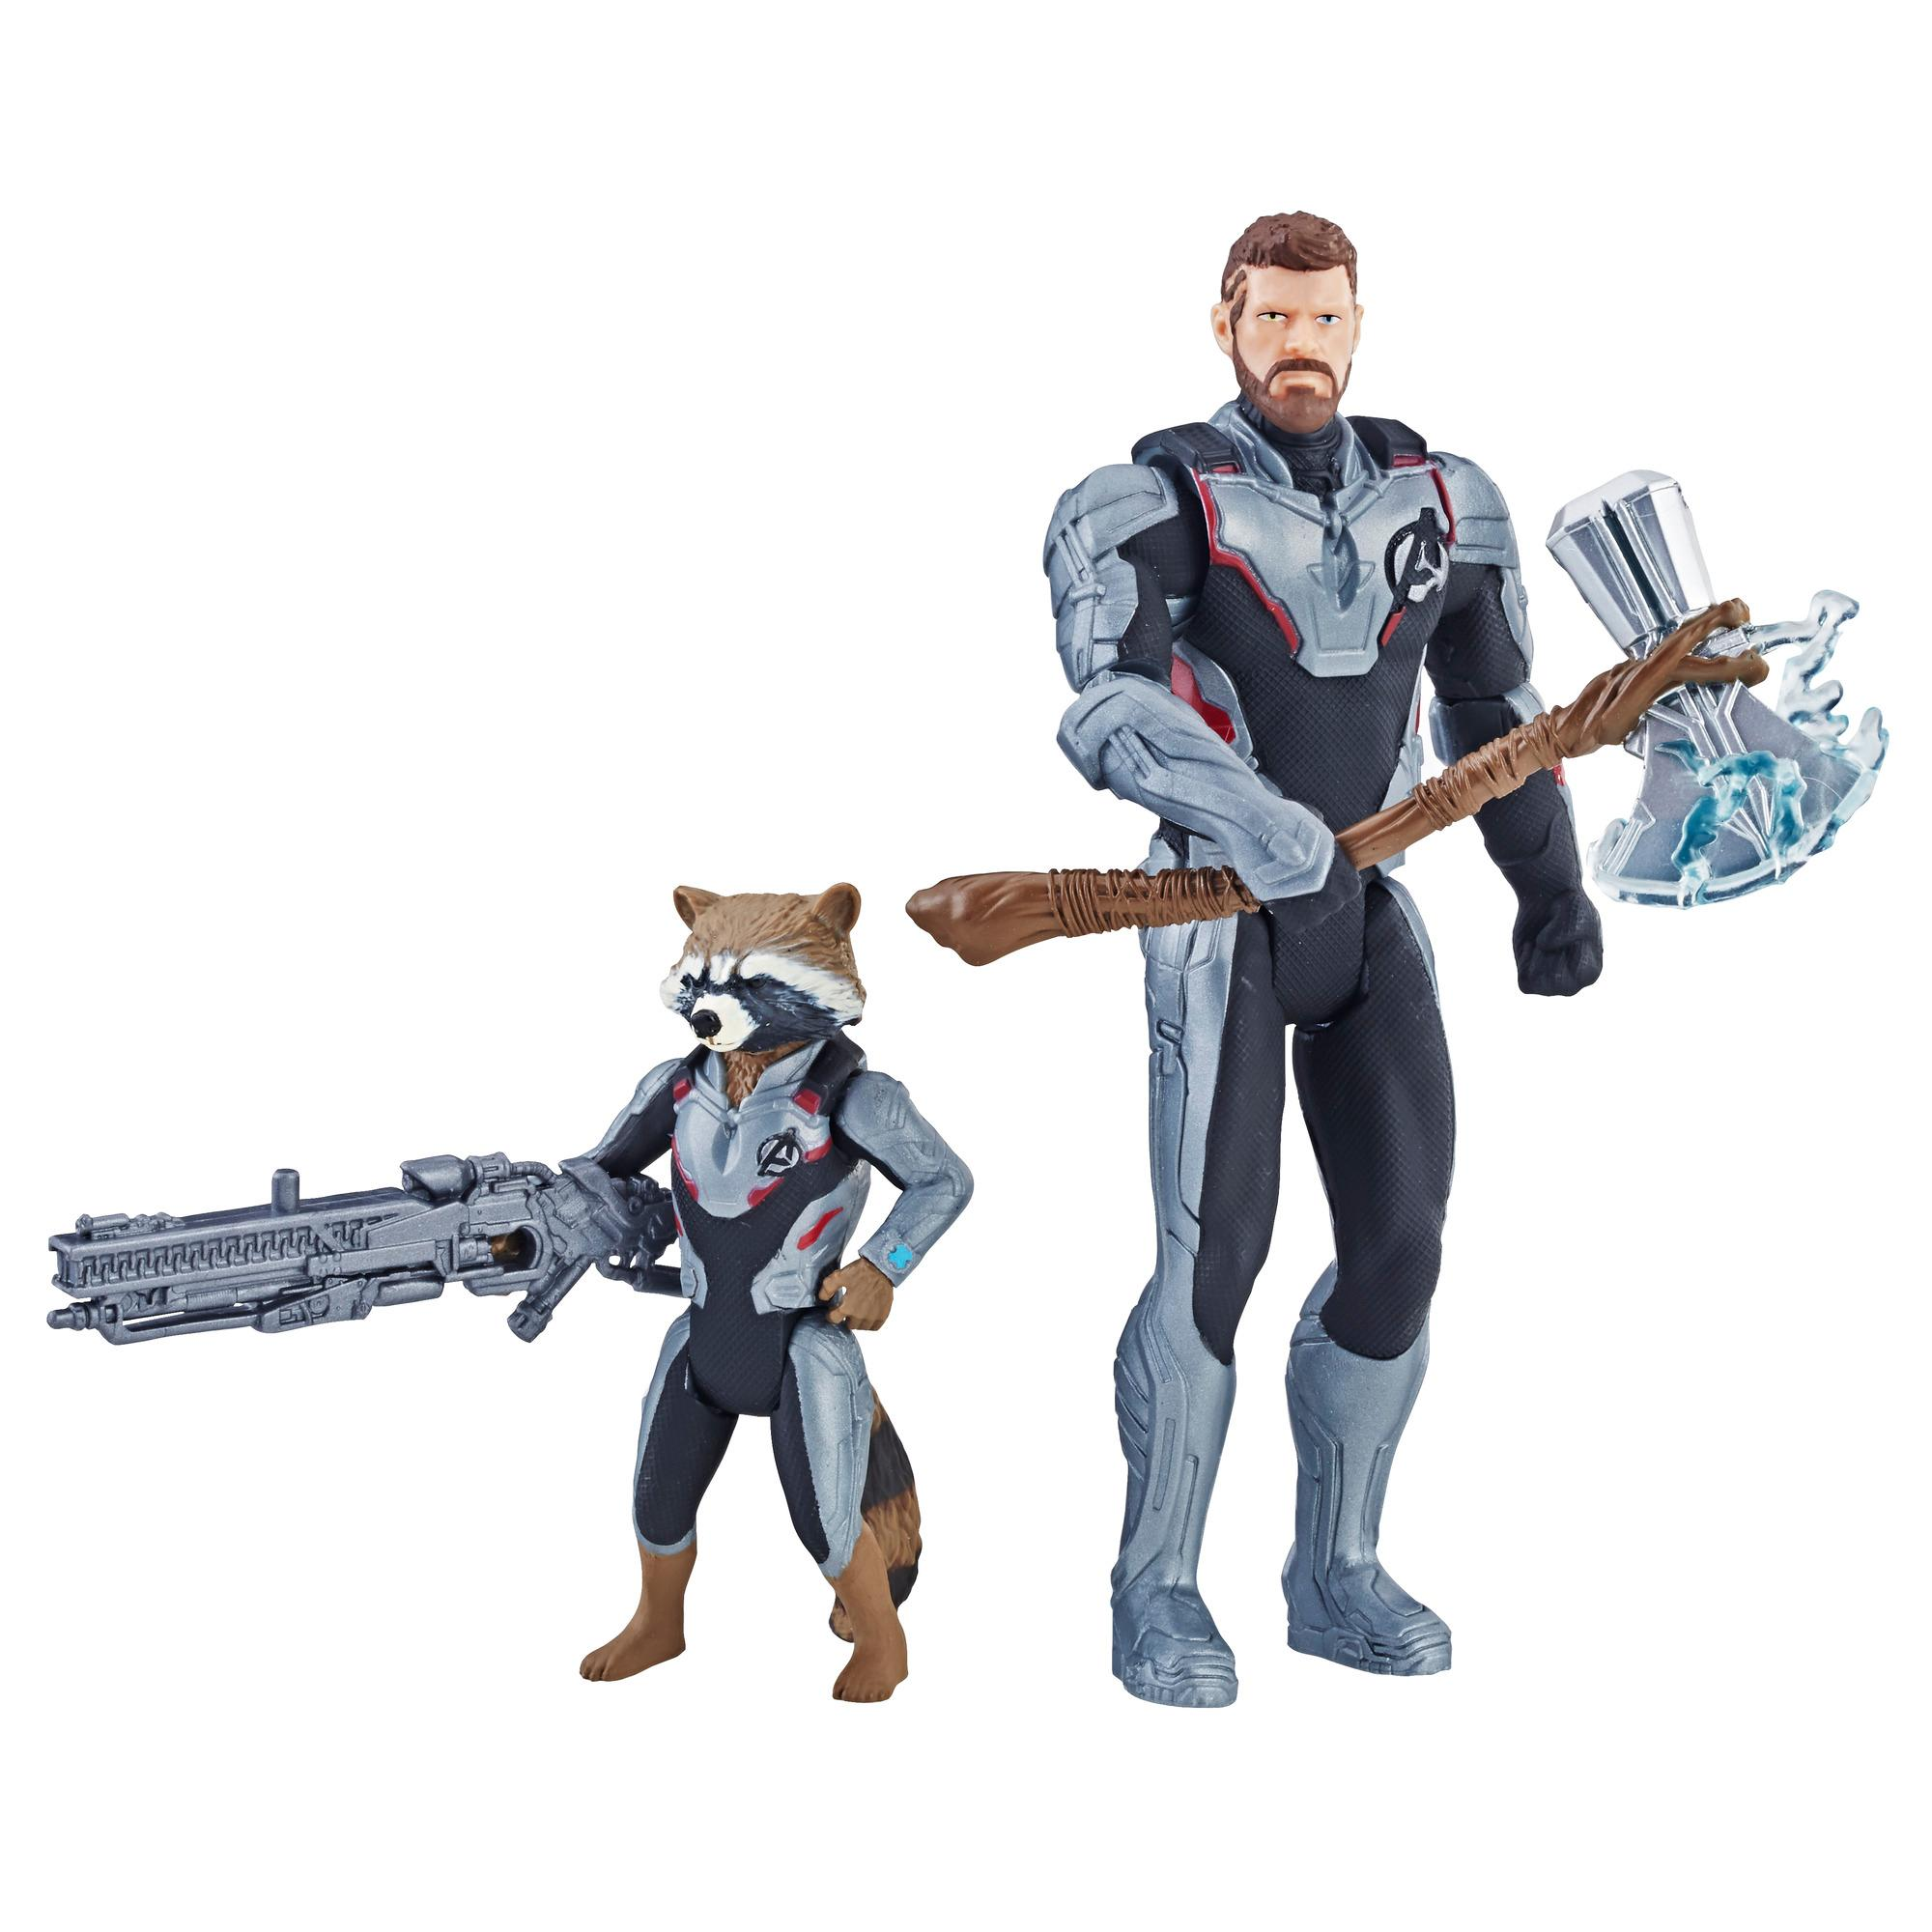 Marvel Avengers: Endgame Thor and Rocket Raccoon 2-pack